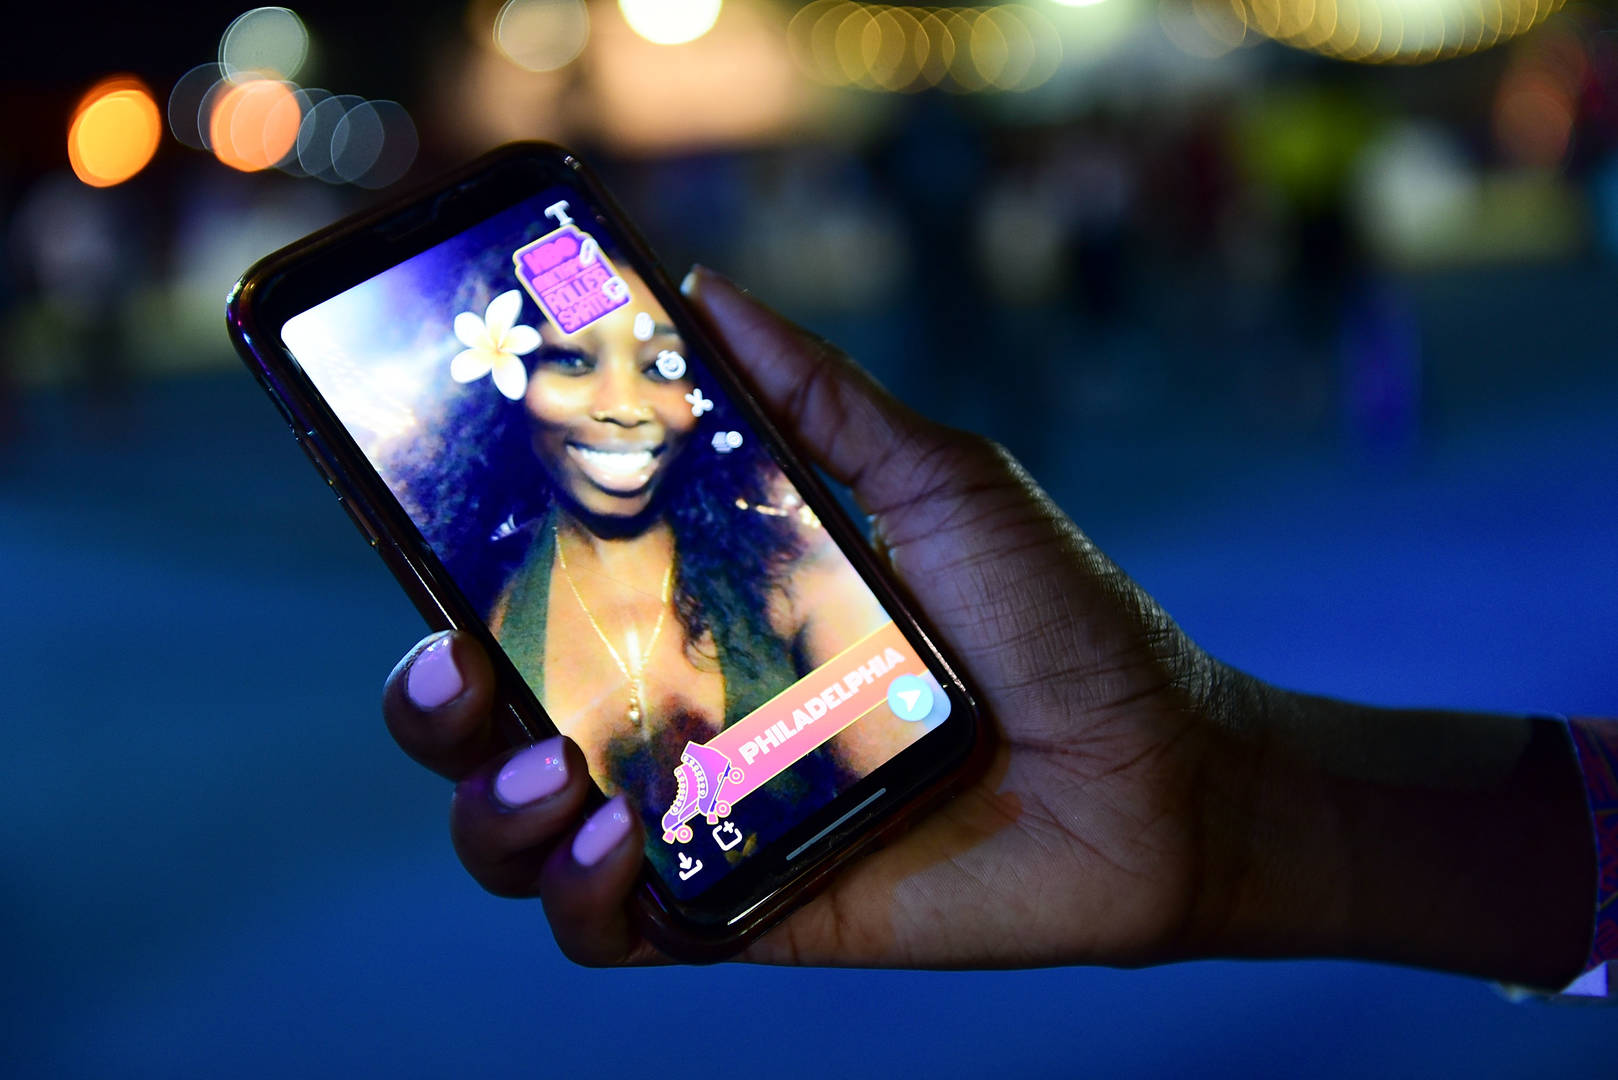 """Dating App Plenty Of Fish Bans """"Deceptive"""" Filtered Images From Profiles"""